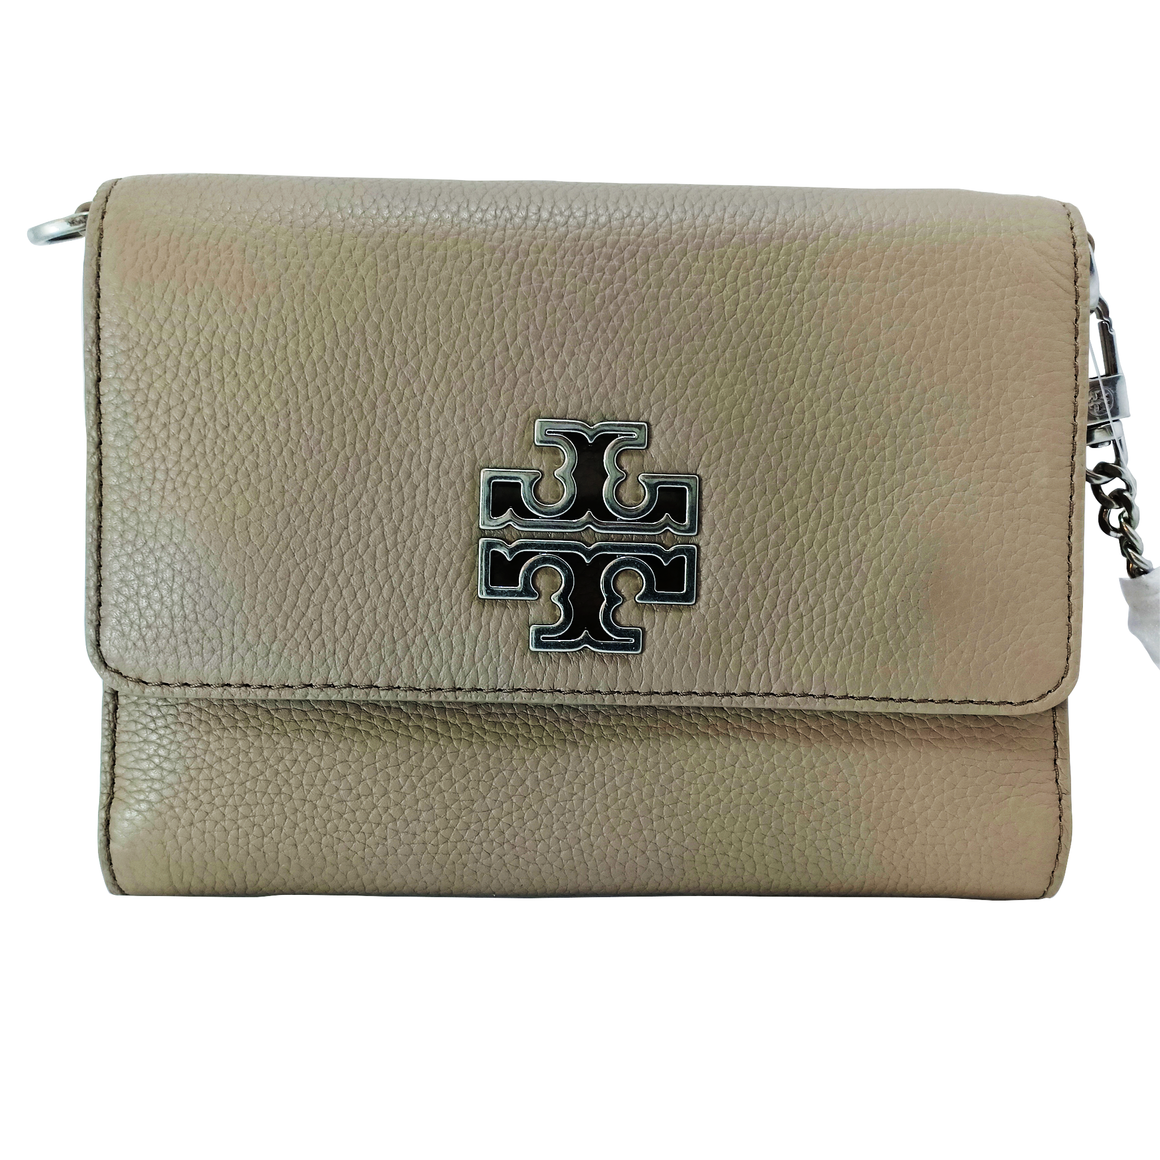 Tory Burch Britten Chain Wallet - French Gray